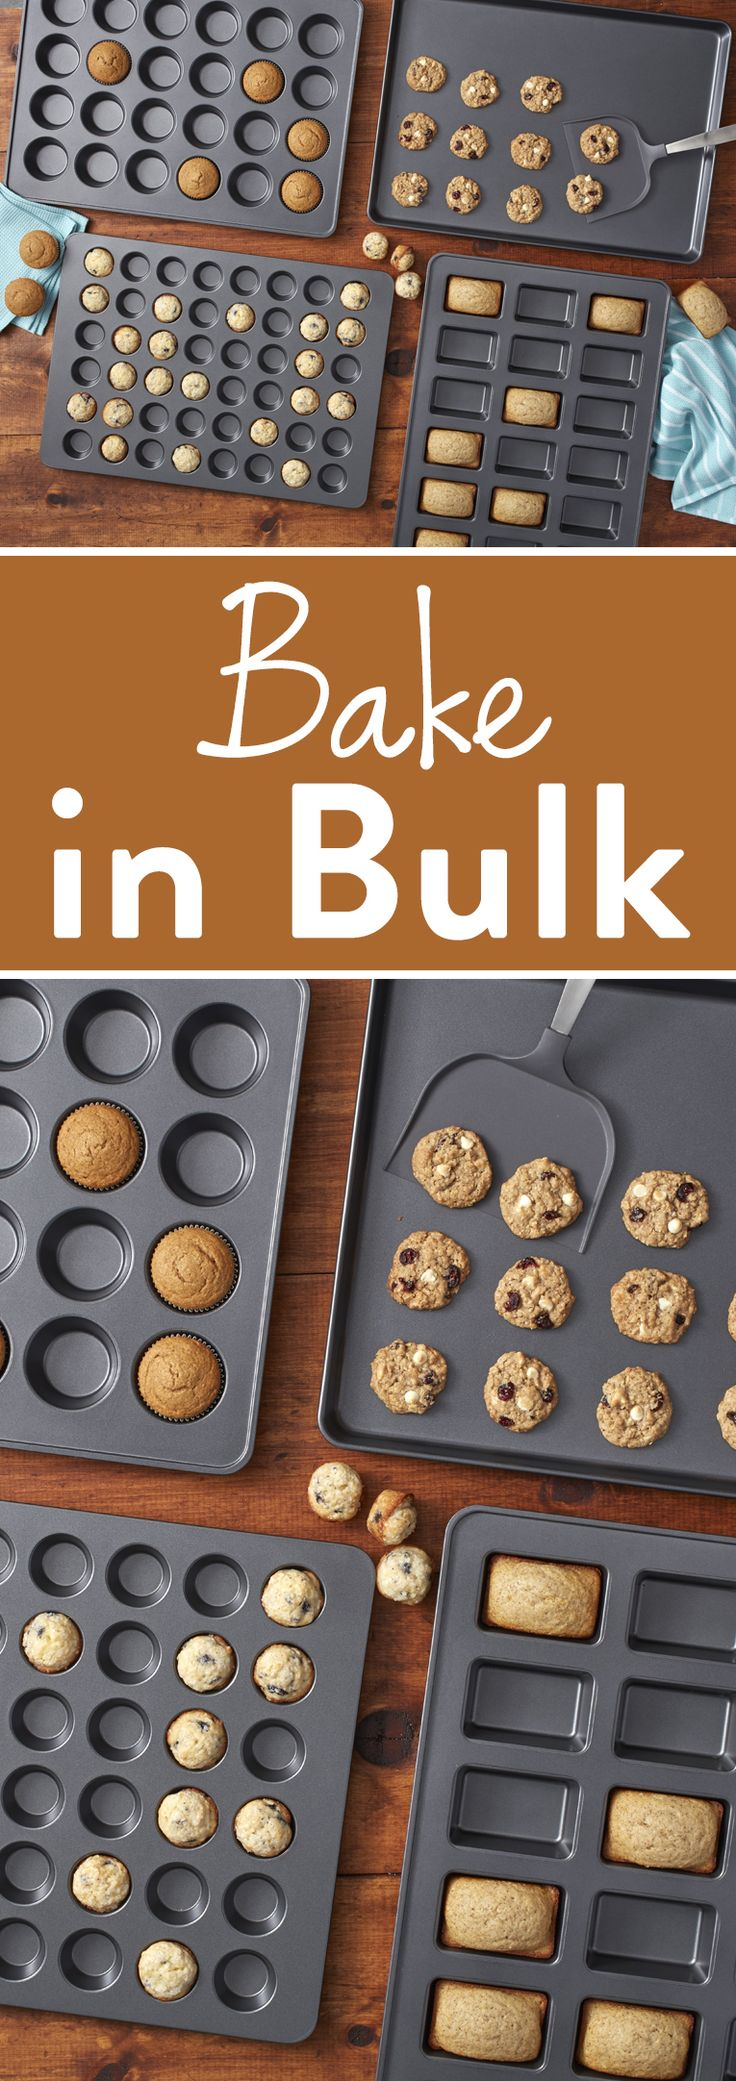 How to Bake in Bulk - Big baking jobs such as parties, bake sales, work luncheons and holidays call for super-sized baking pans! Wiltons mega bakeware oversized pans make efficient use of your time in the kitchen – no more waiting for two rounds of baking! The pans are roughly as wide and deep as most ovens, so they'll maximize your oven space. Plus, the non-stick coating on these pans makes cleaning up a breeze.